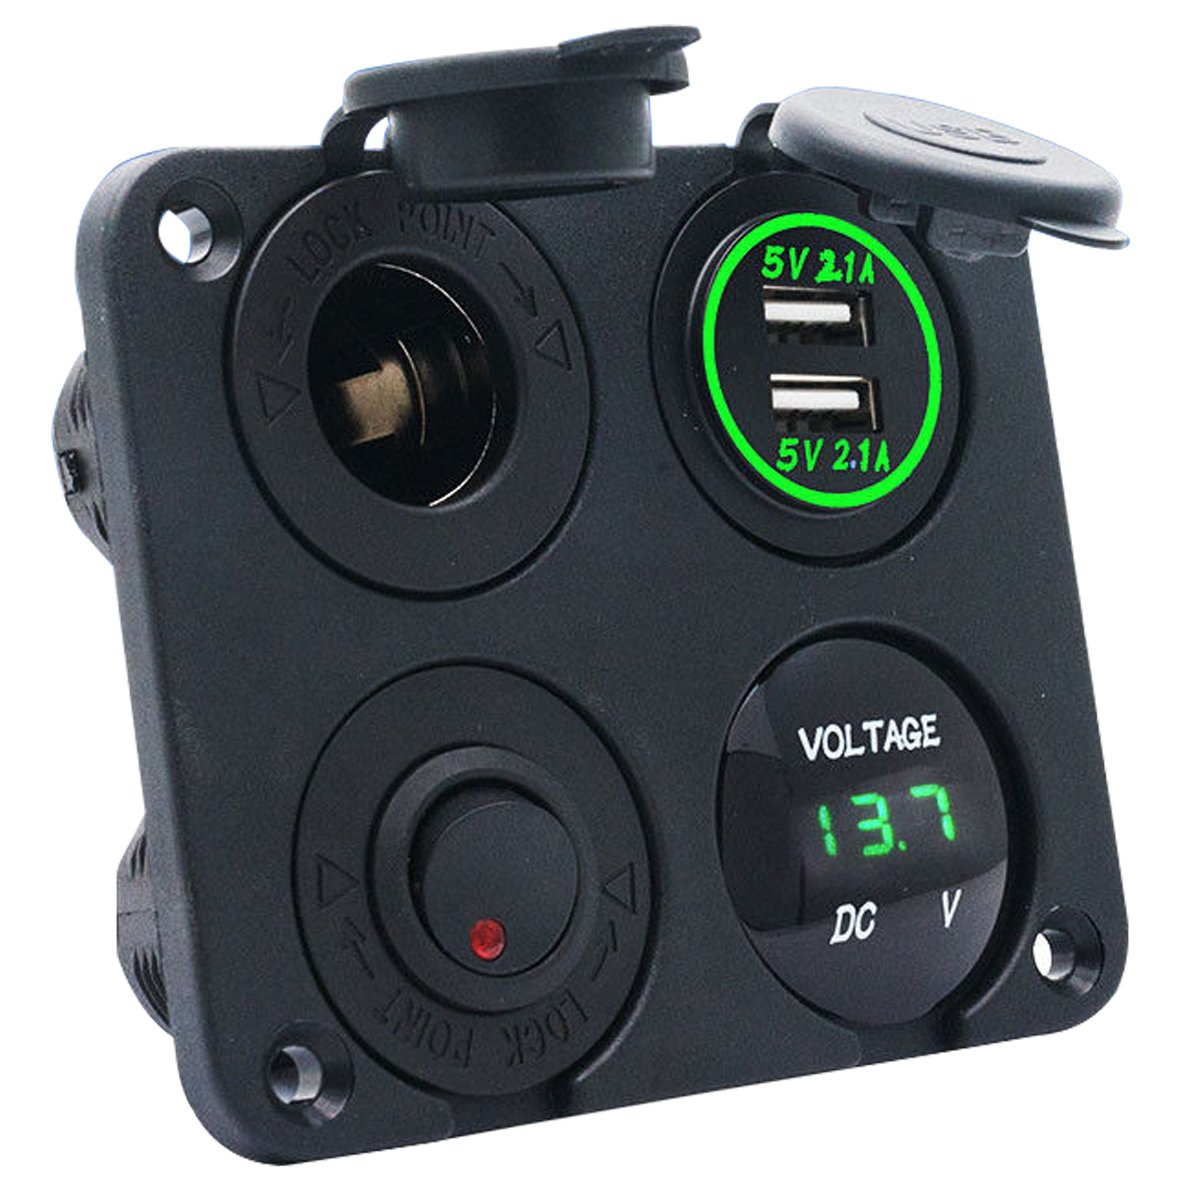 MASO 2 Port USB Charger Panel Mount 3.1A Output Carling, Narva ARB Rocker Switch